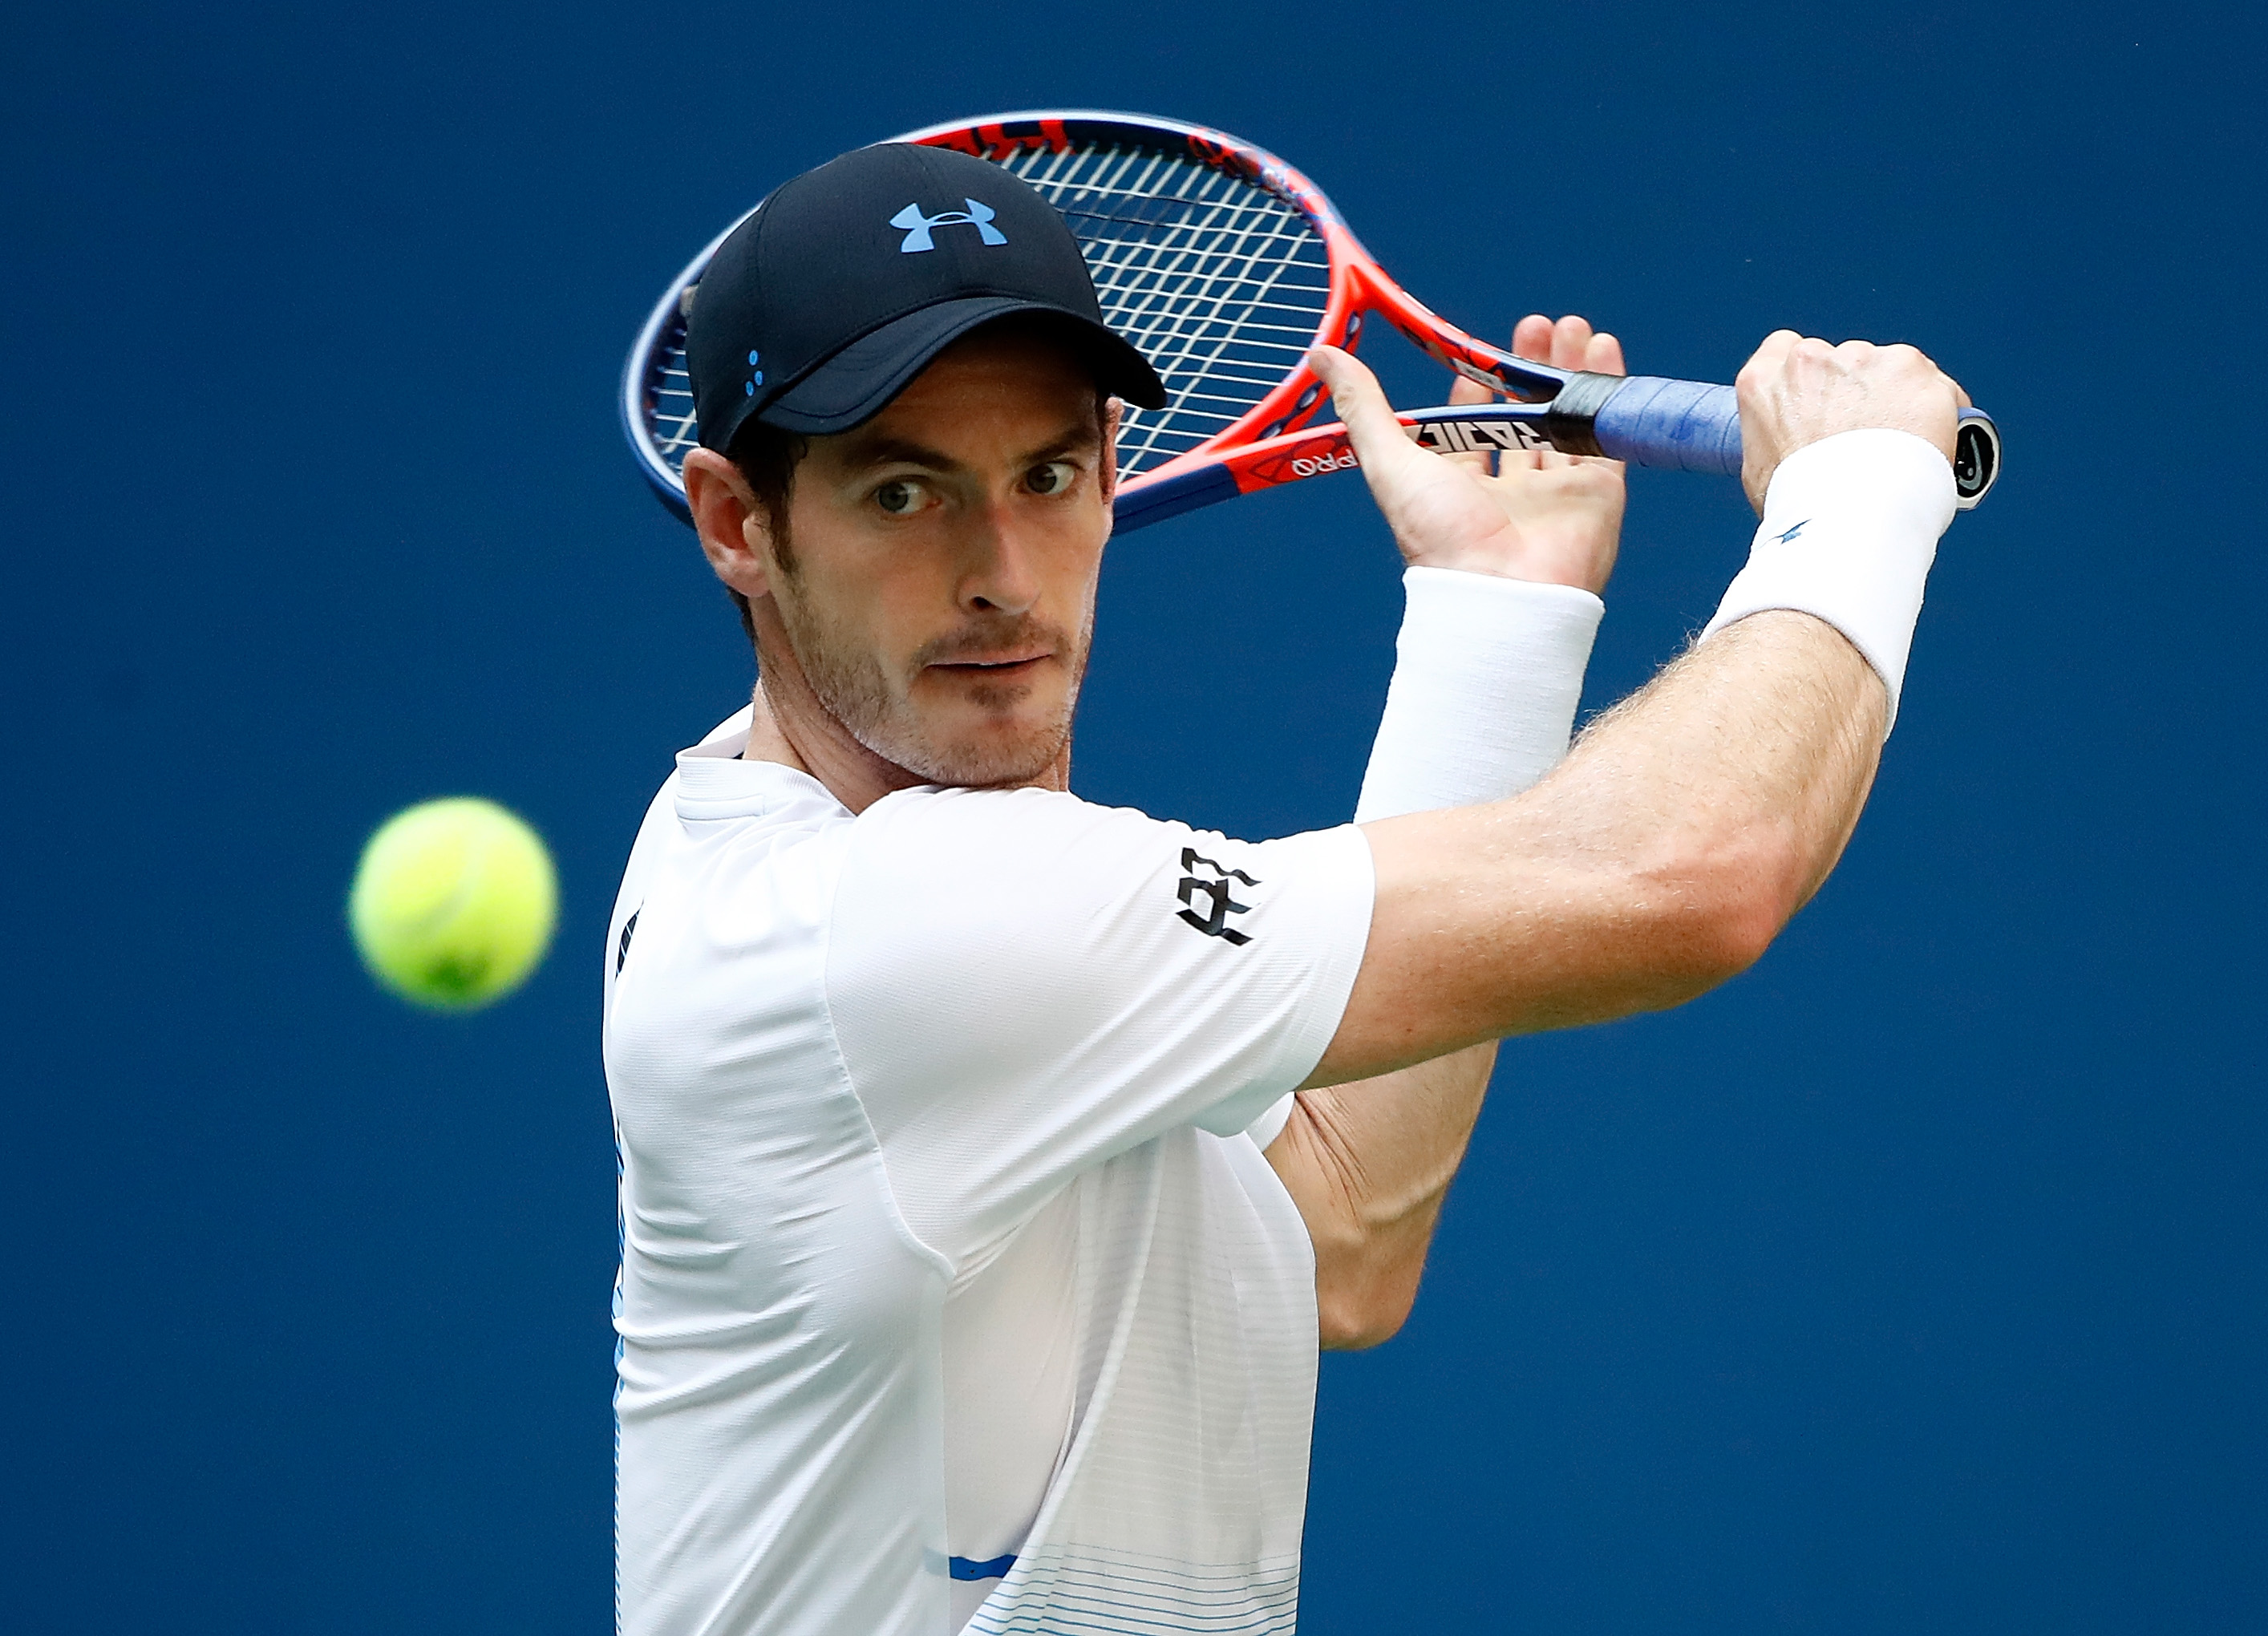 Andy Murray of Great Britain returns the ball during his men's singles second round match against Fernando Verdasco of Spain on Day Three of the 2018 US Open at the USTA Billie Jean King National Tennis Center on August 29, 2018 in the Flushing neighborhood of the Queens borough of New York City.  (Photo by Julian Finney/Getty Images)